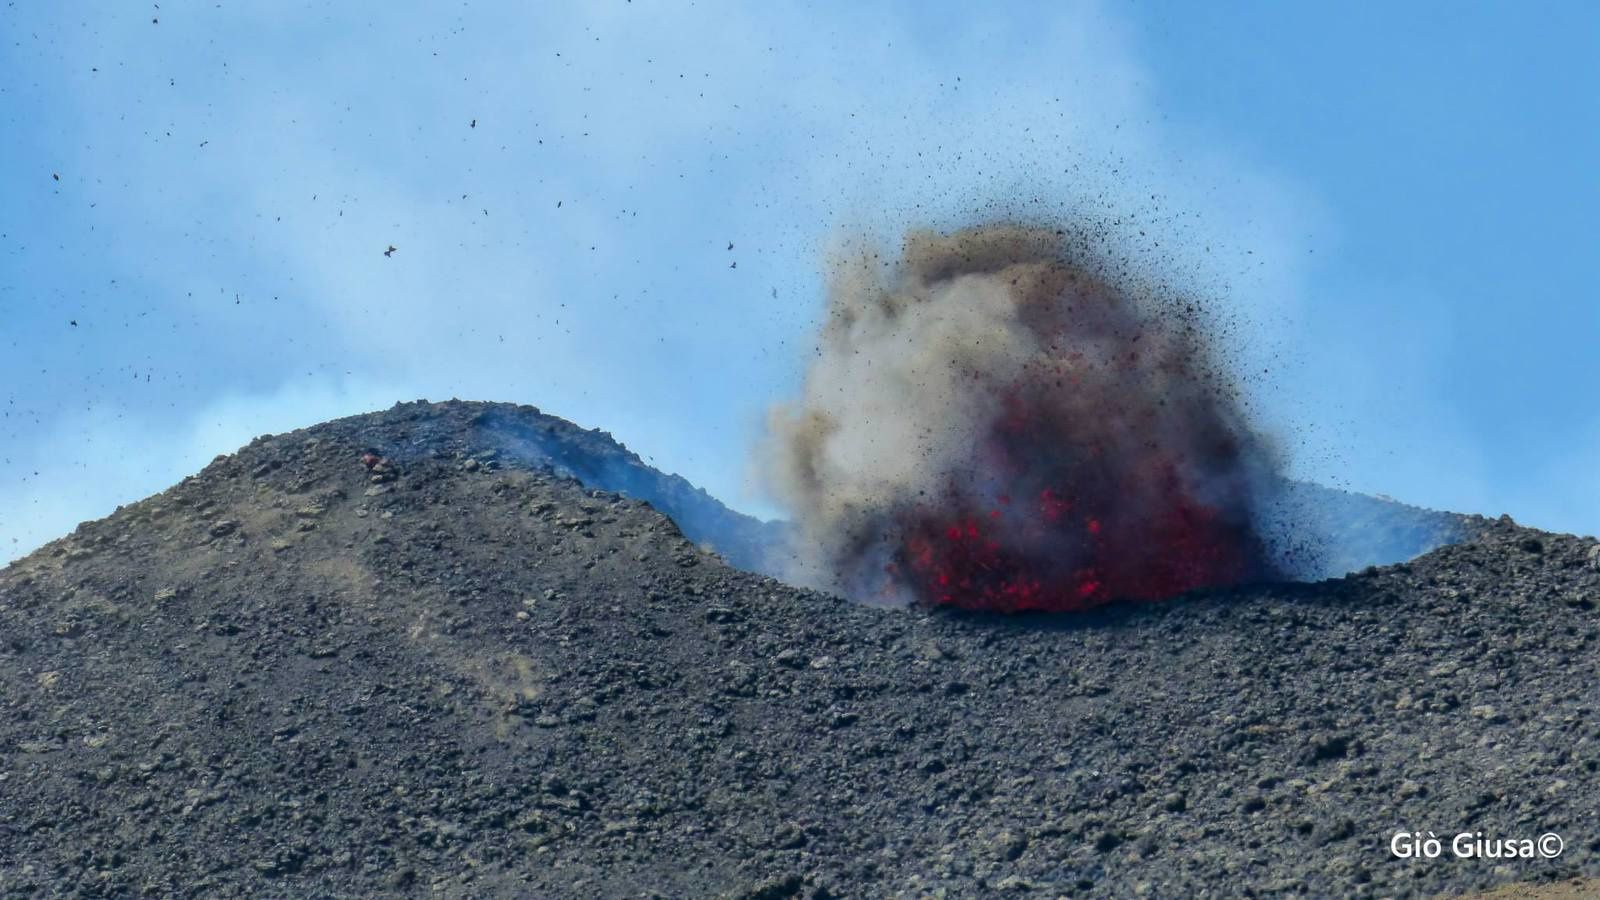 Etna NEC : on the eruptive fissure at 3150 m altitude, the 08/02/2014 -. photo Gio Giusa